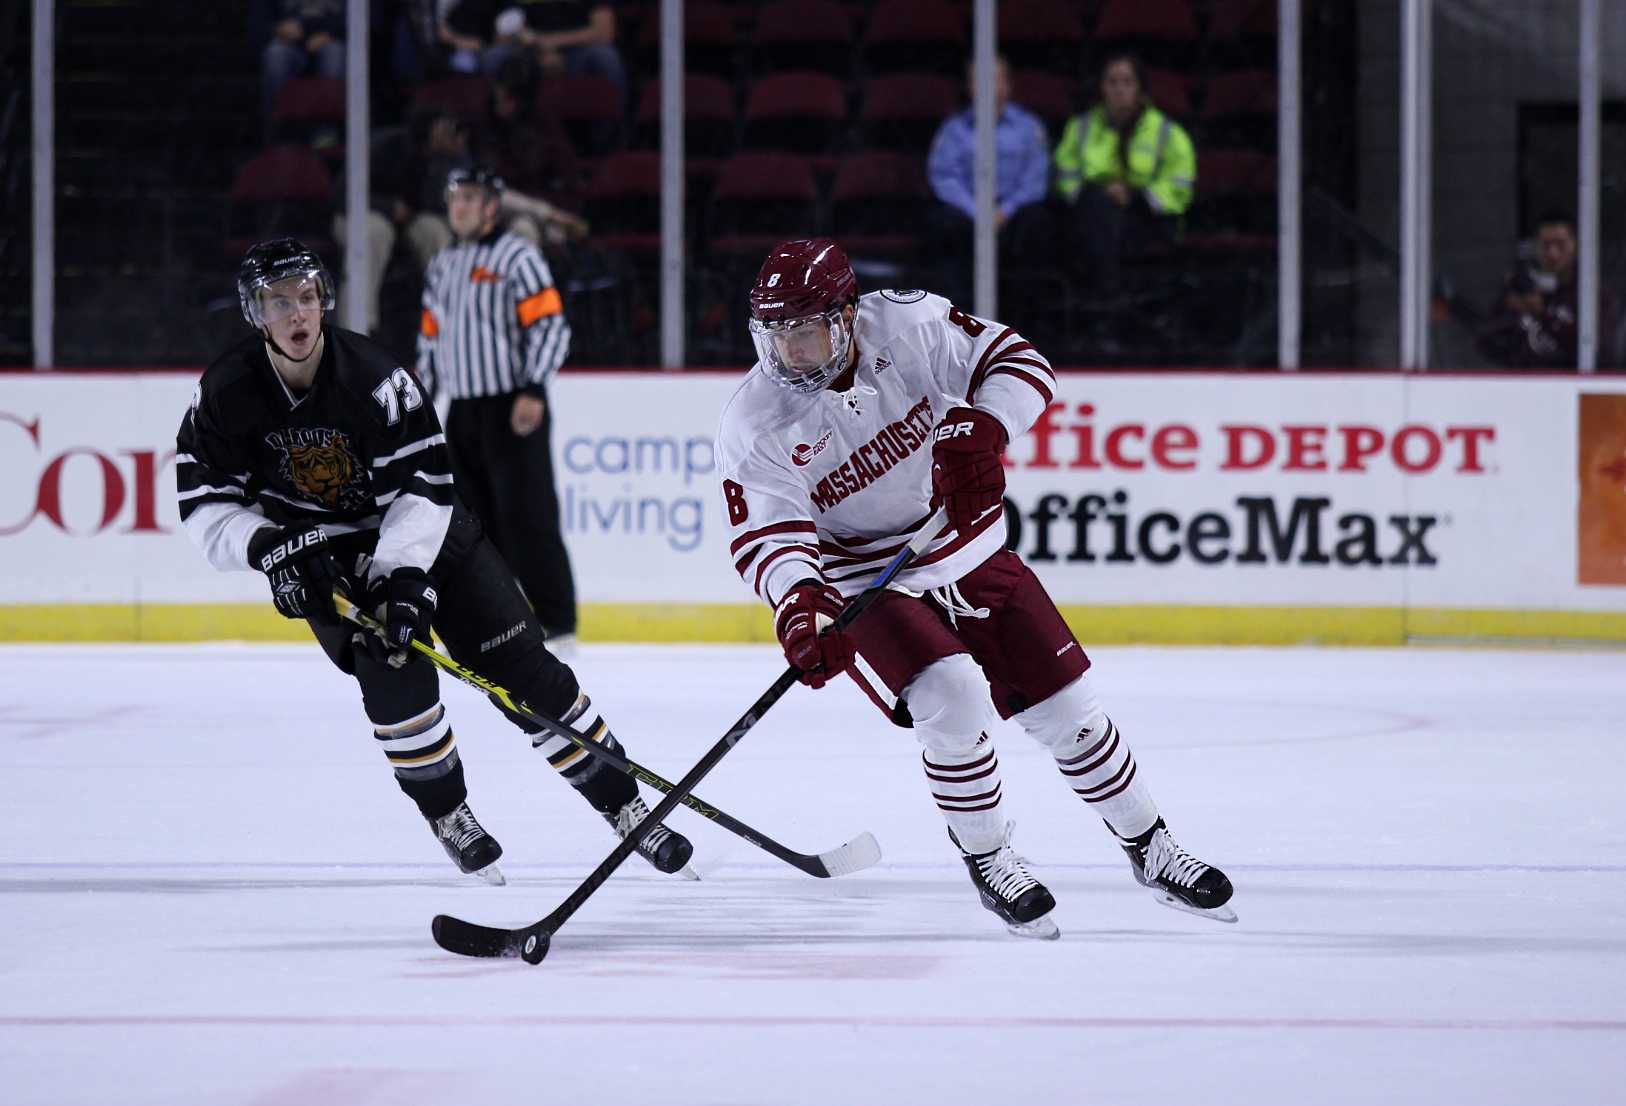 Photo Slideshow: UMass Hockey Exhibition Game